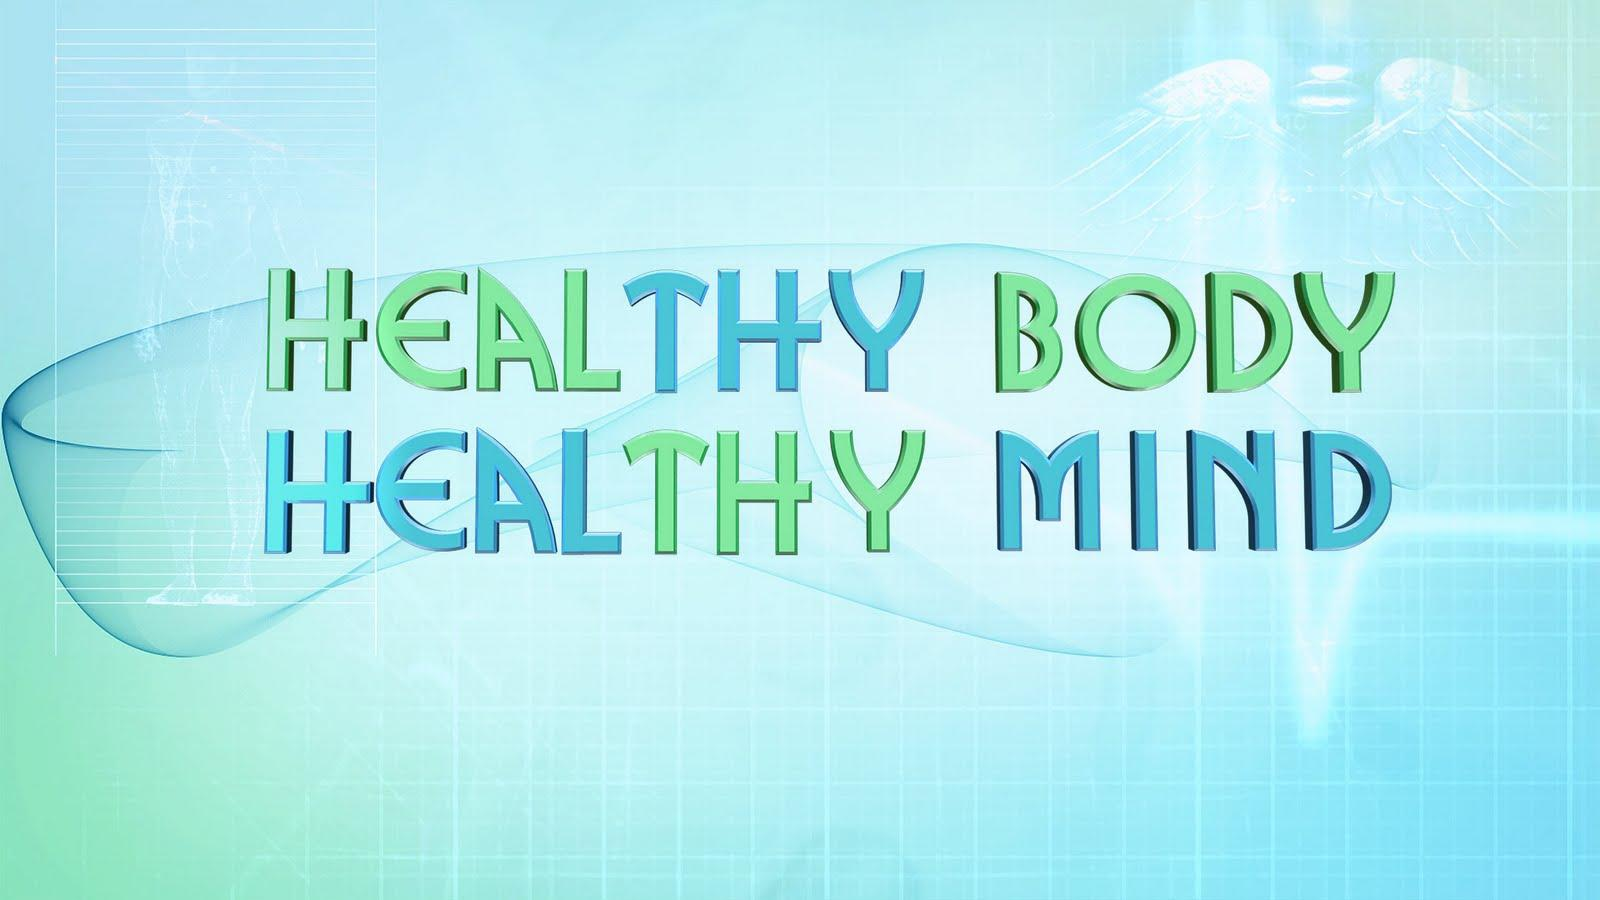 healthy body Define health: the condition of being sound in body, mind, or spirit especially : freedom from physical disease or pain — health in a sentence.